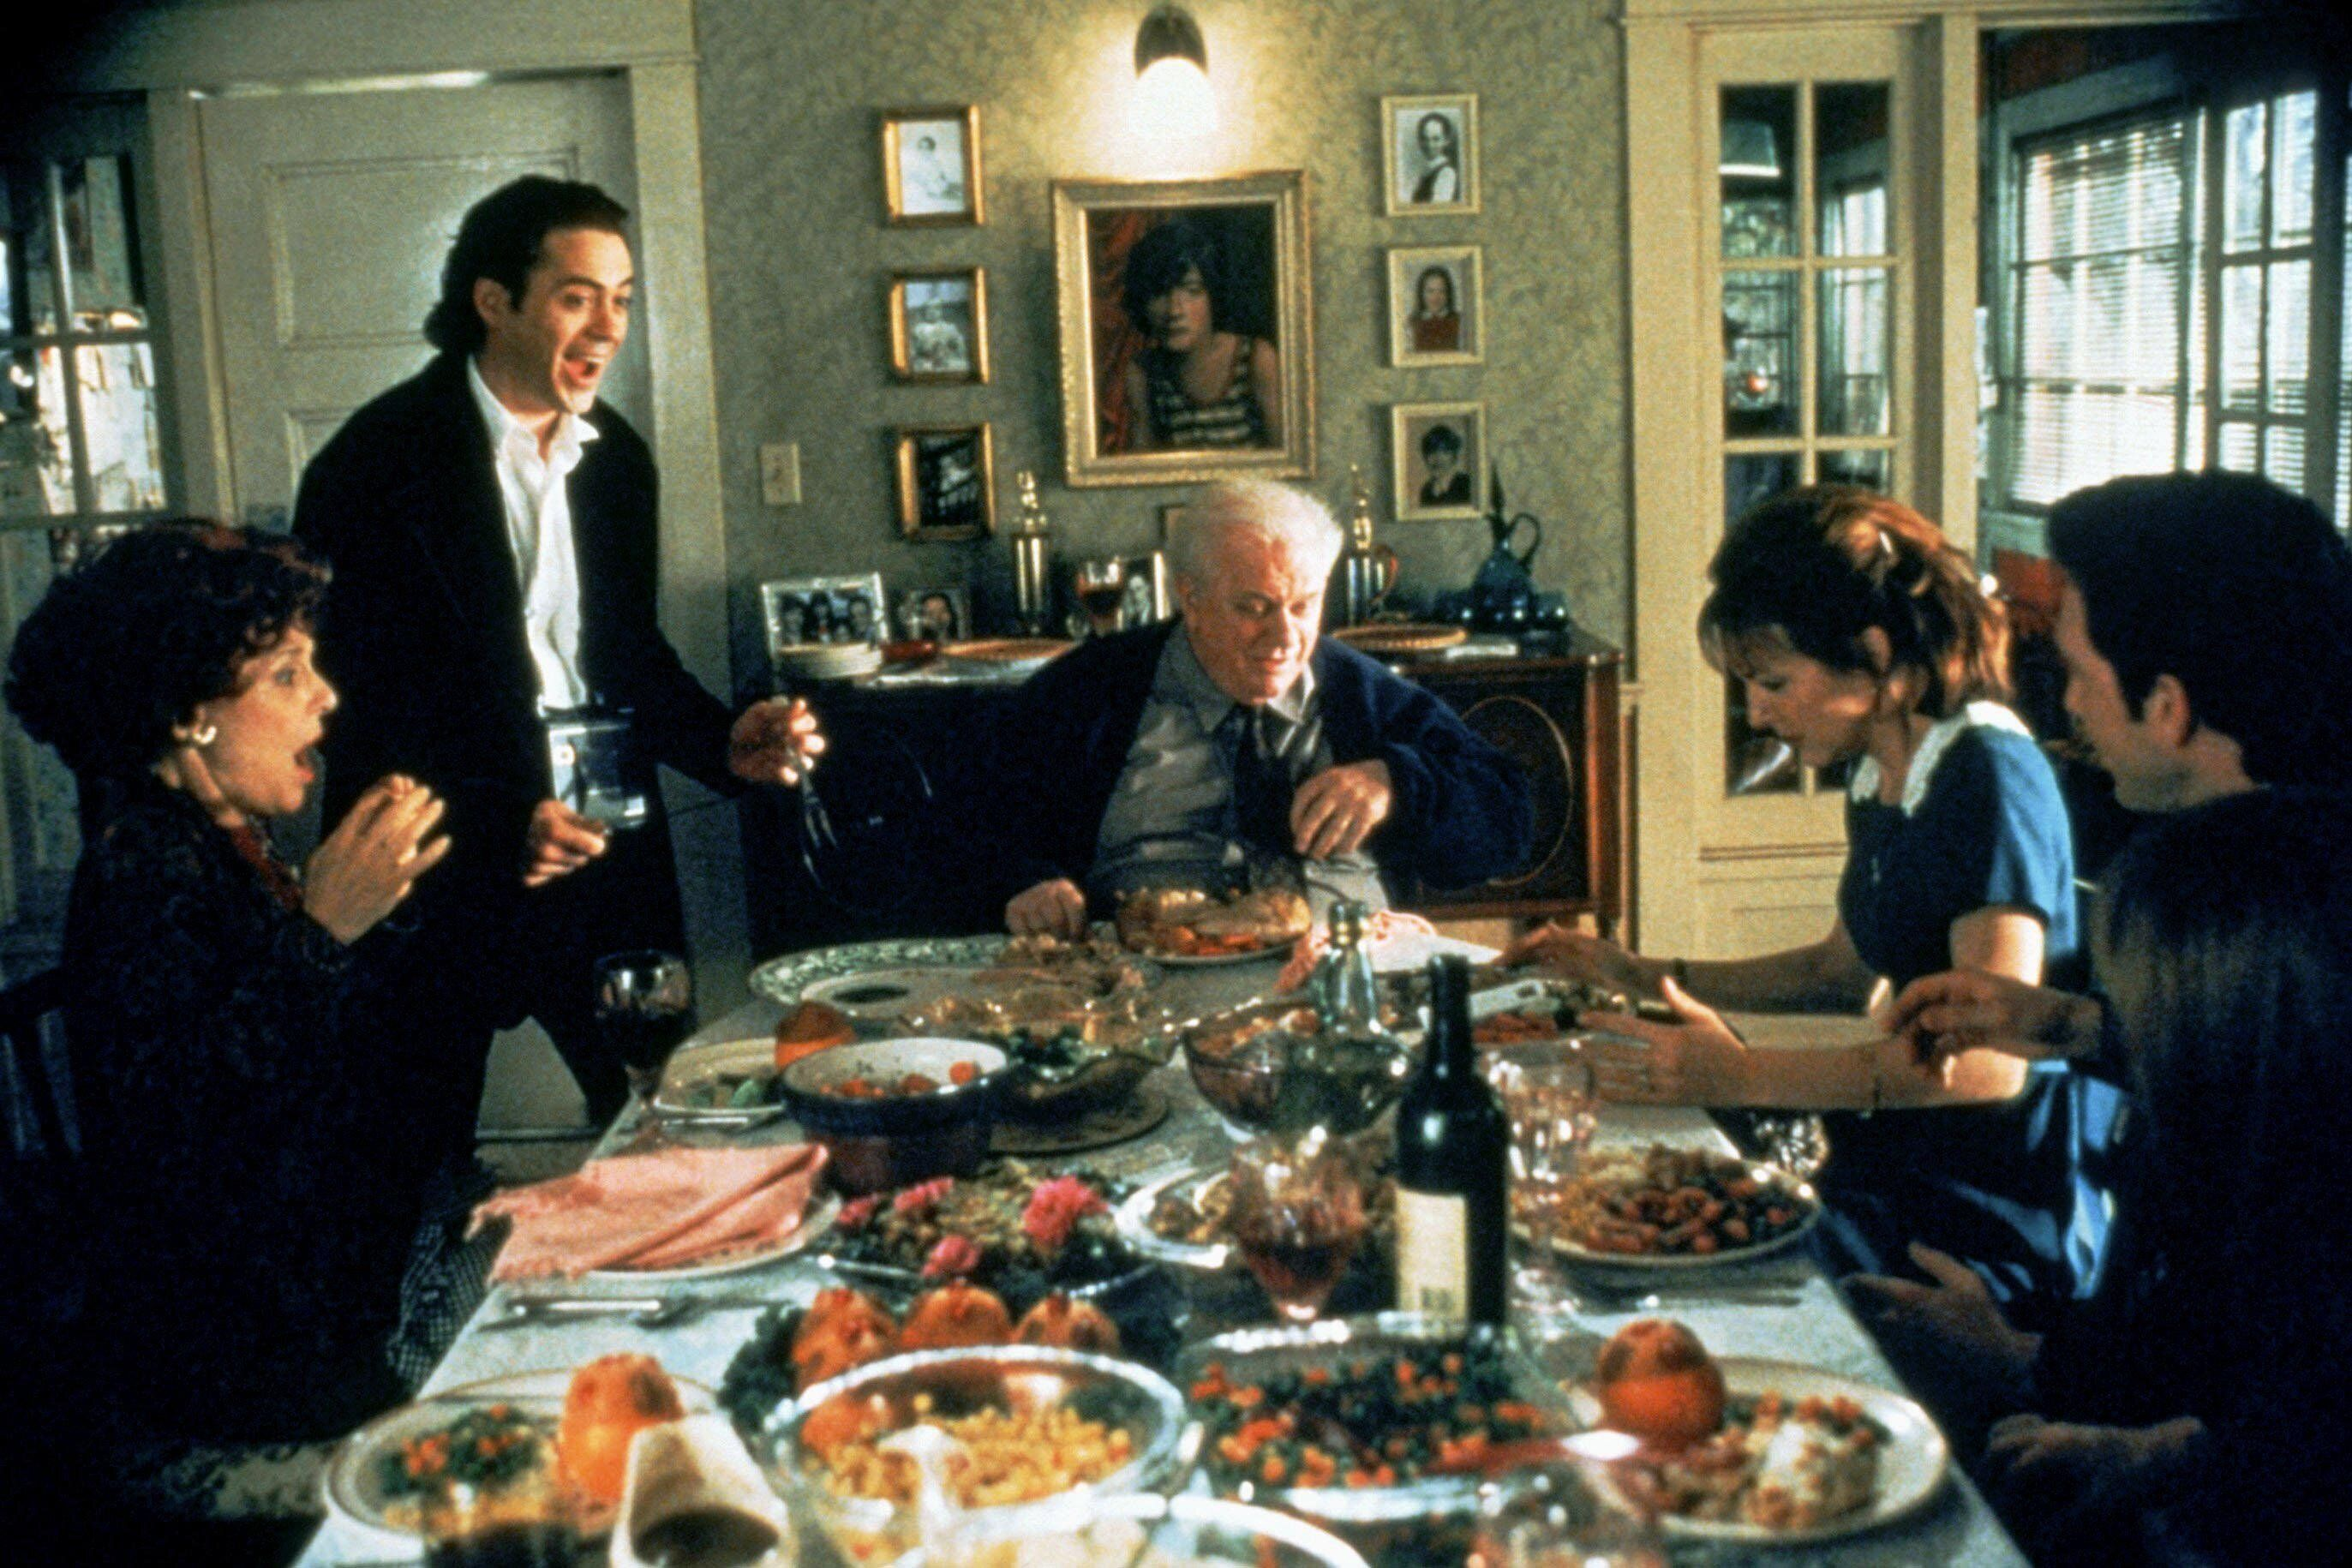 """Bancroft, Downey Jr., Durning,Cynthia Stevenson and Steve Guttenberg in """"Home for the Holidays."""""""